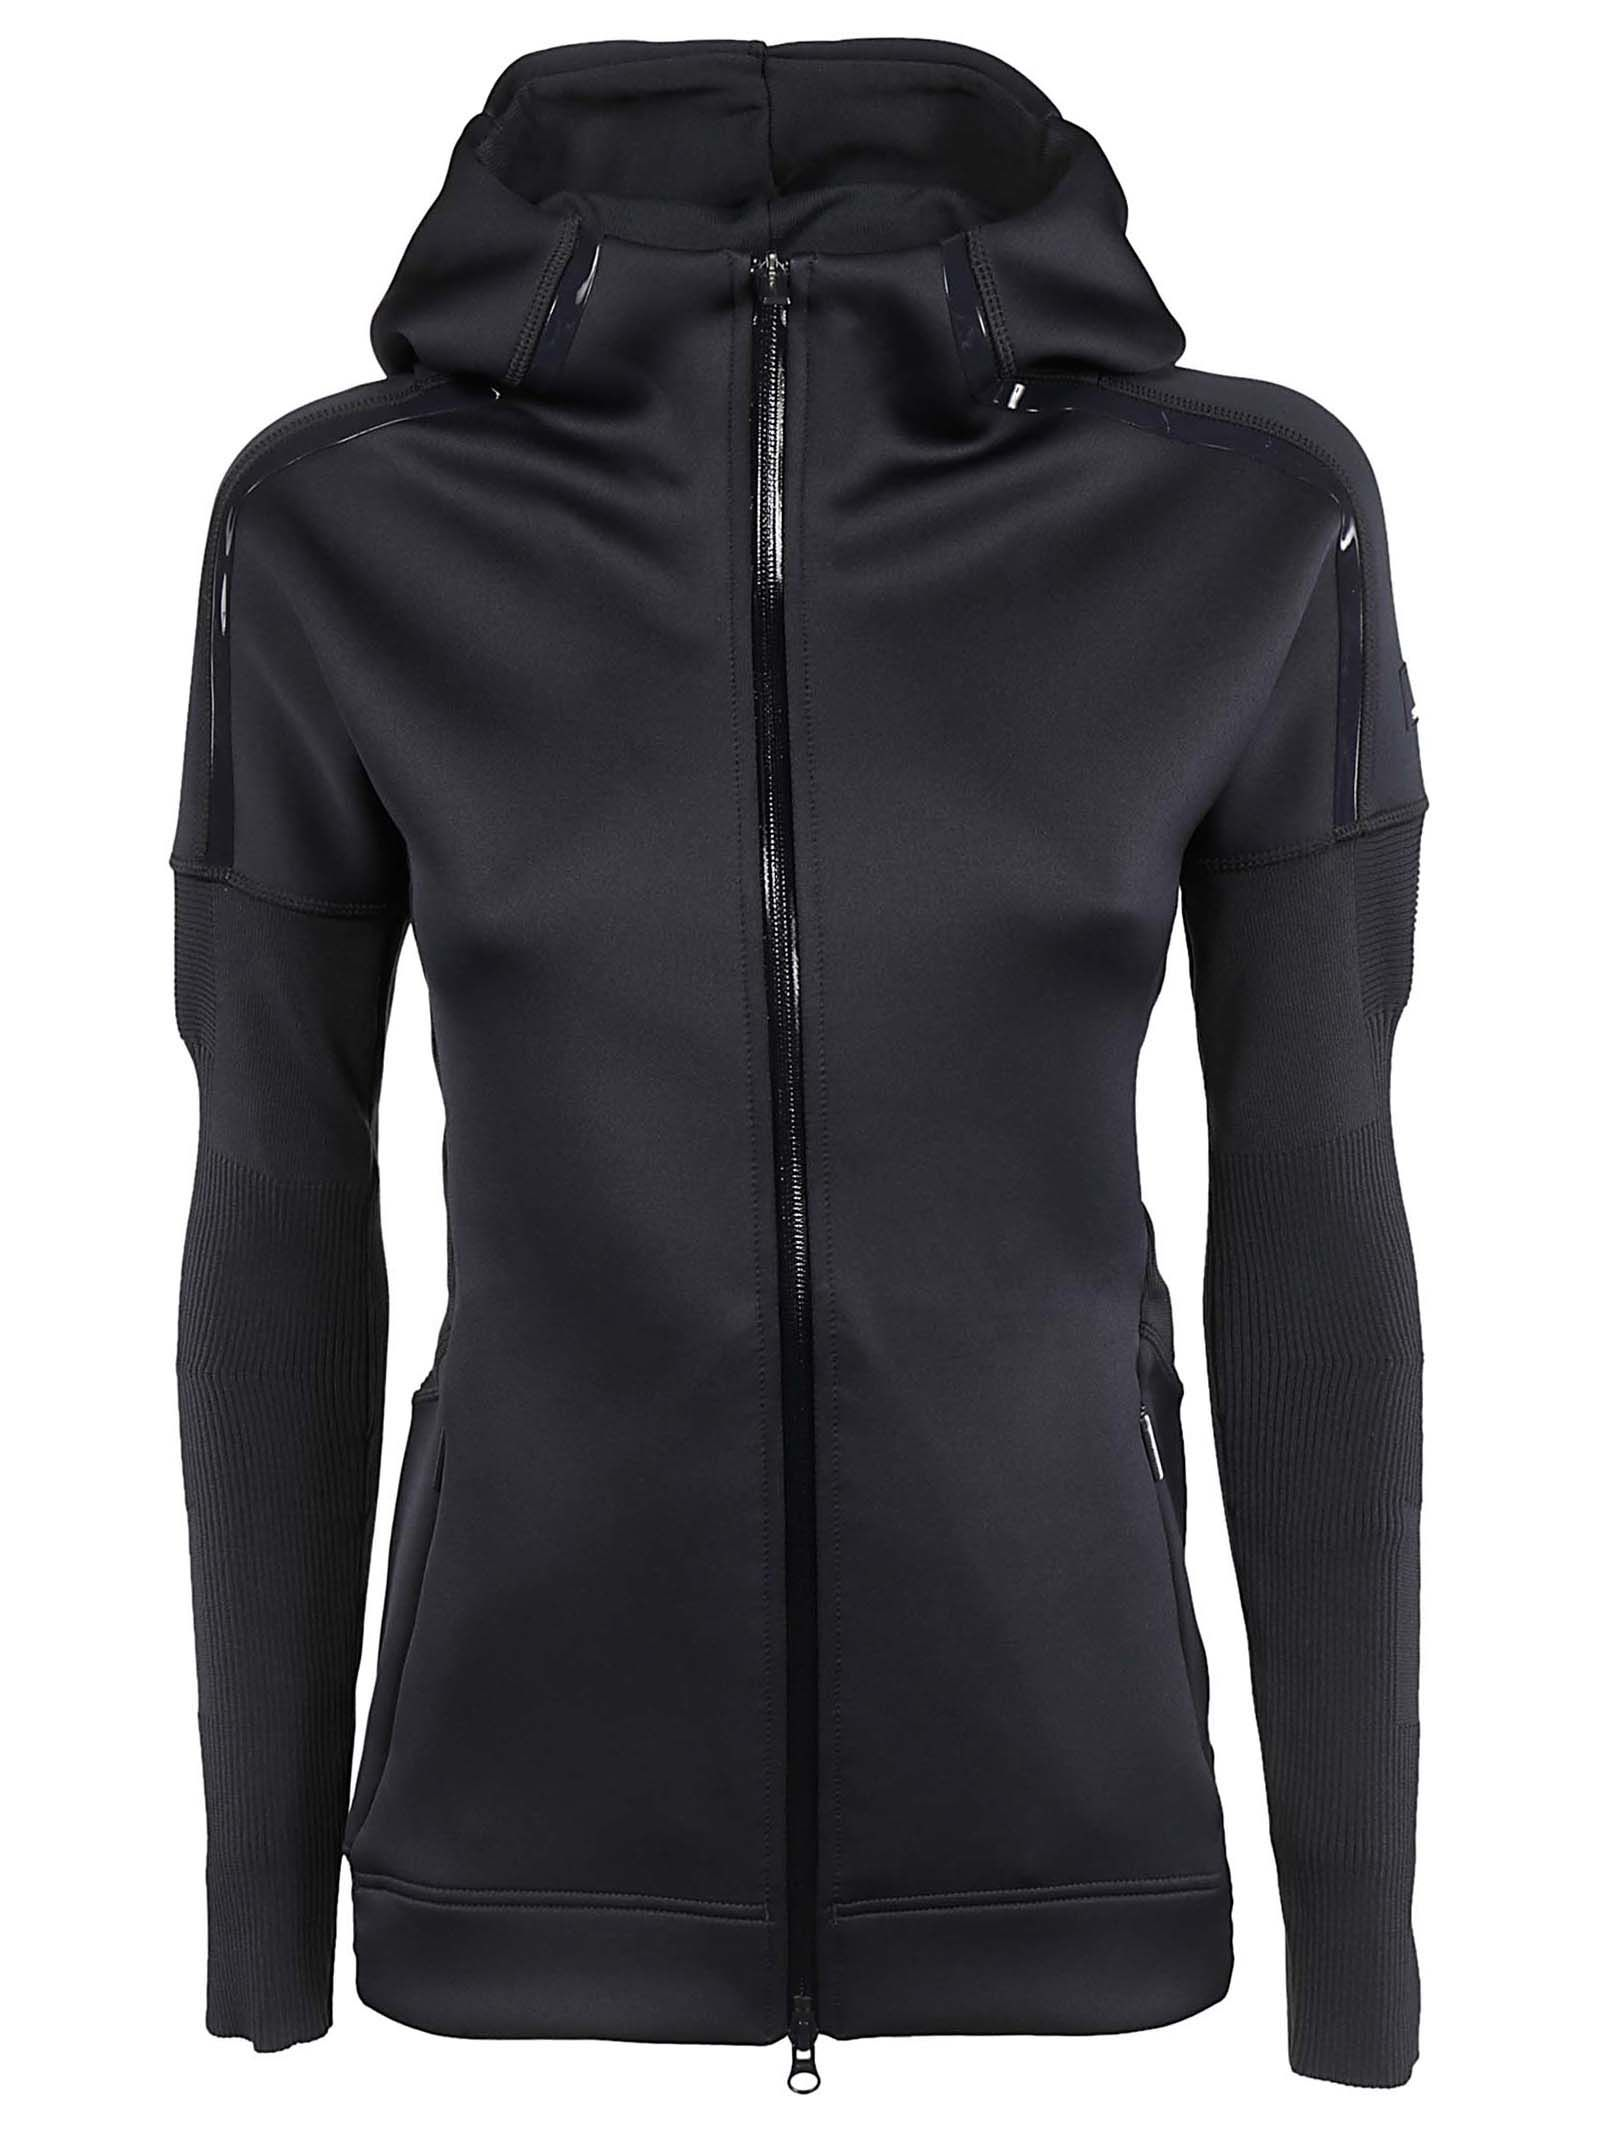 ADIDAS BY STELLA MCCARTNEY KNITTED HOODIE from Italist.com